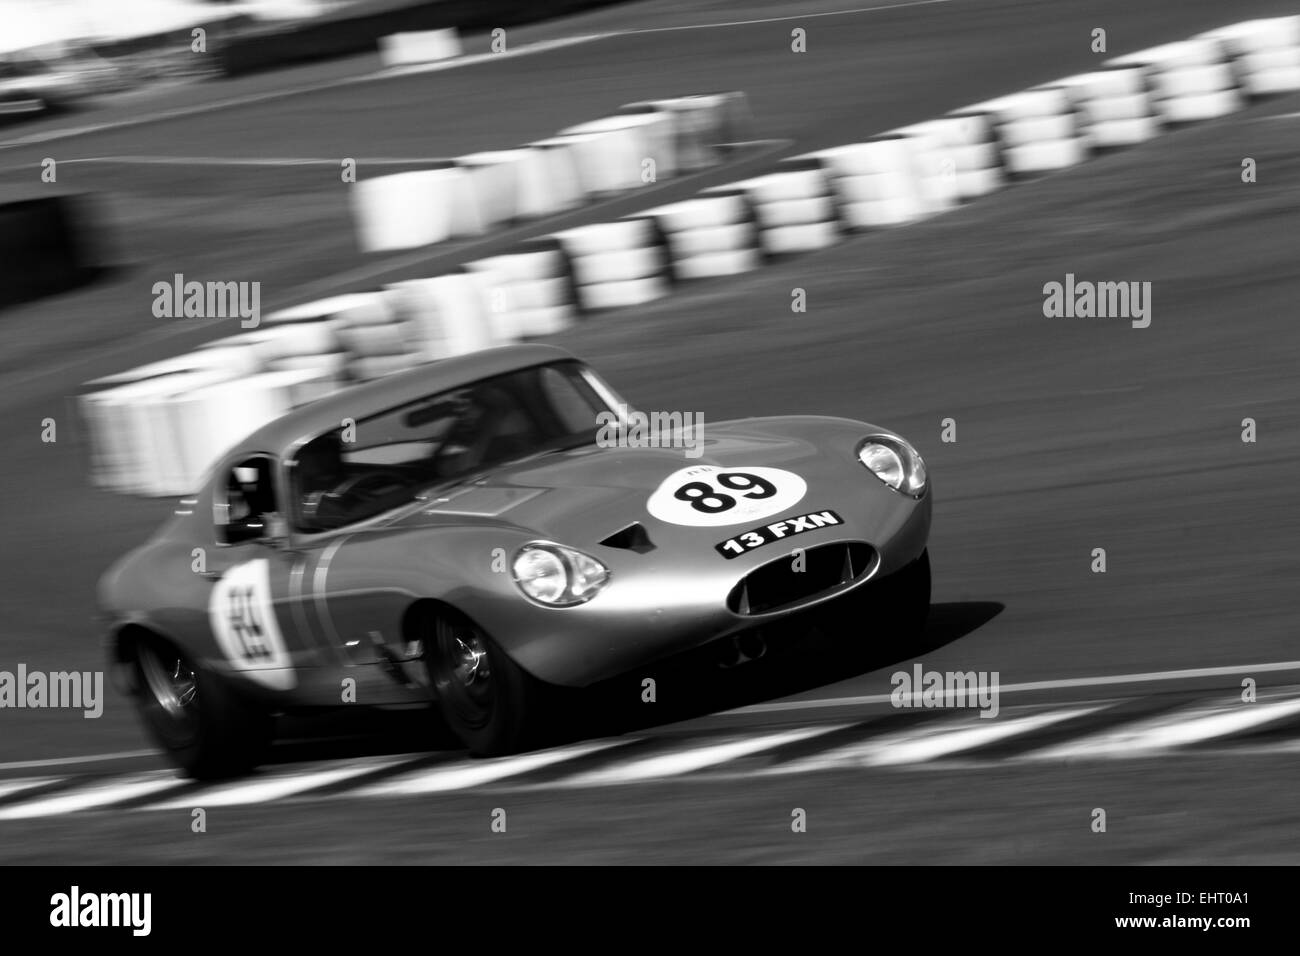 Low Drag Jaguar E-Type blasts its way out of the chicane at Goodwood Motorcircuit during Members Meeting 73 testing - Stock Image